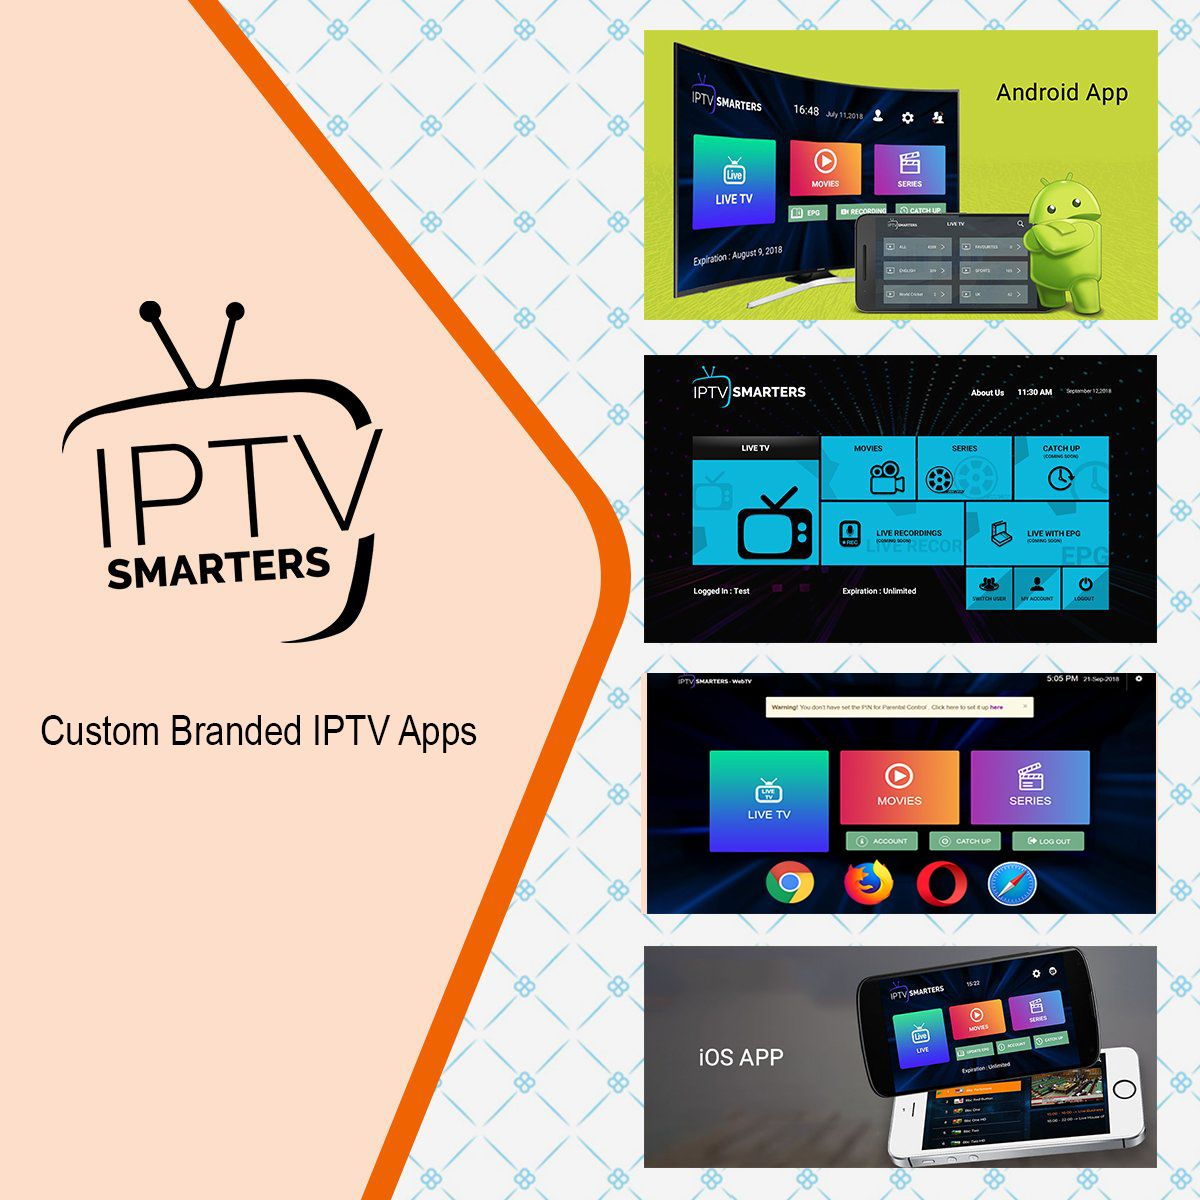 Are you IPTV Services Provider? If you want IPTV Apps with your own